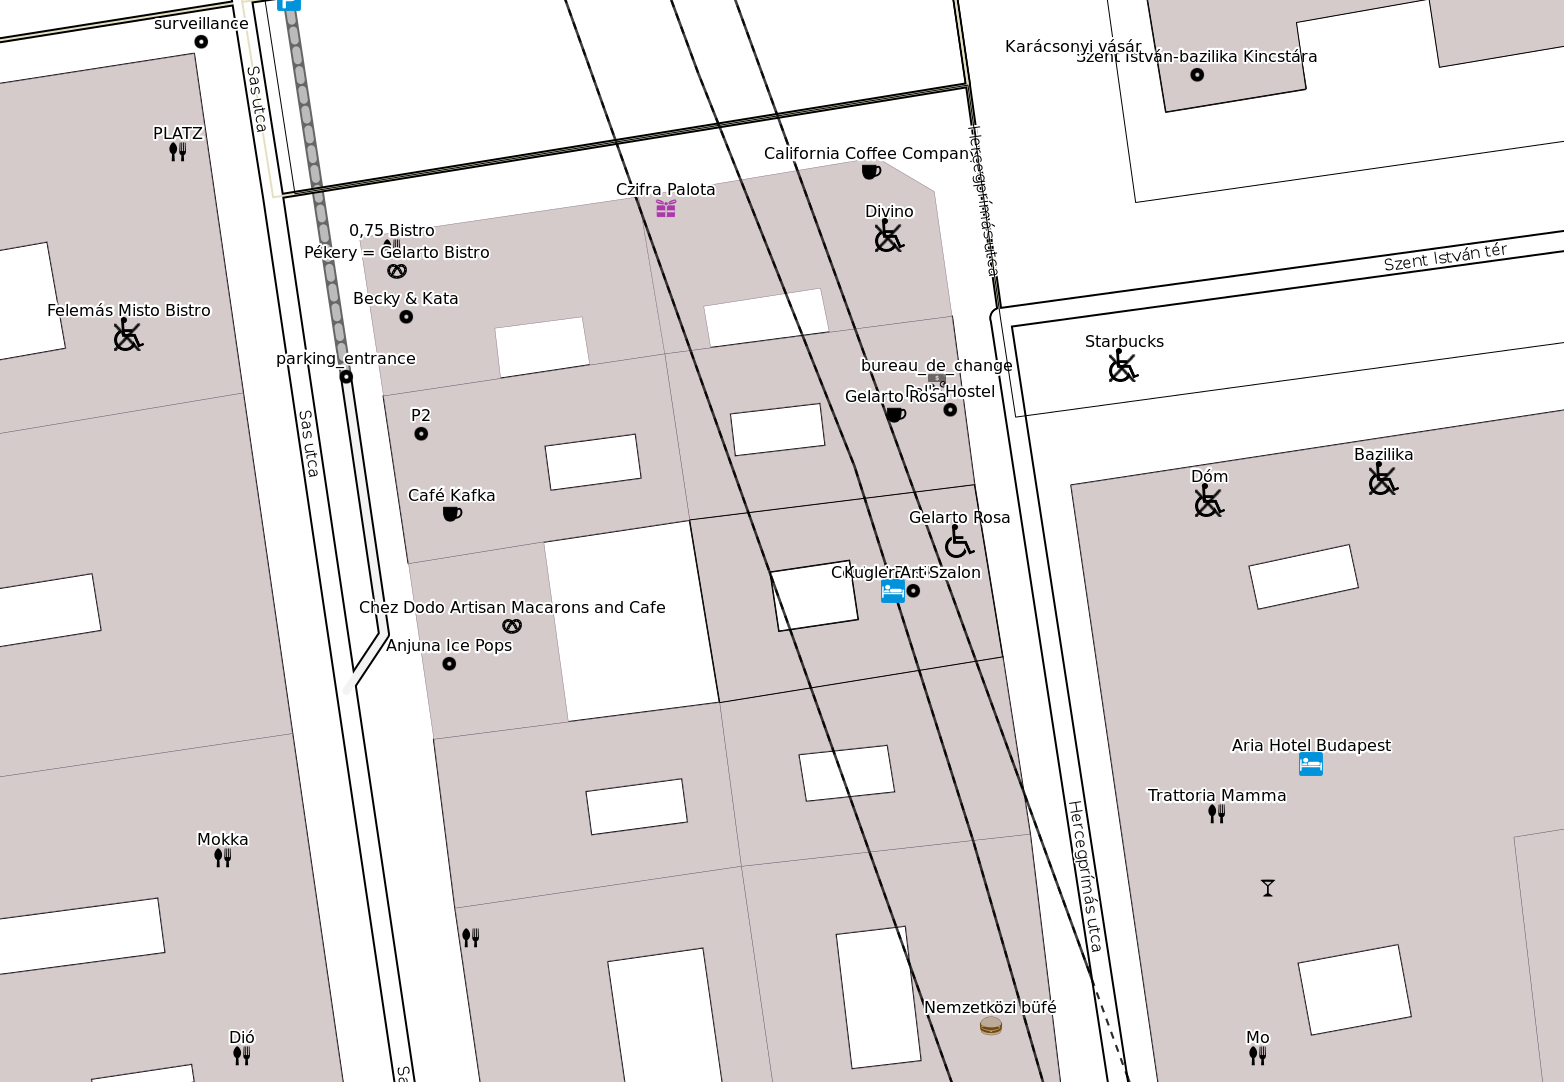 Map part, shows POIs with wheelchair accessibility icons.